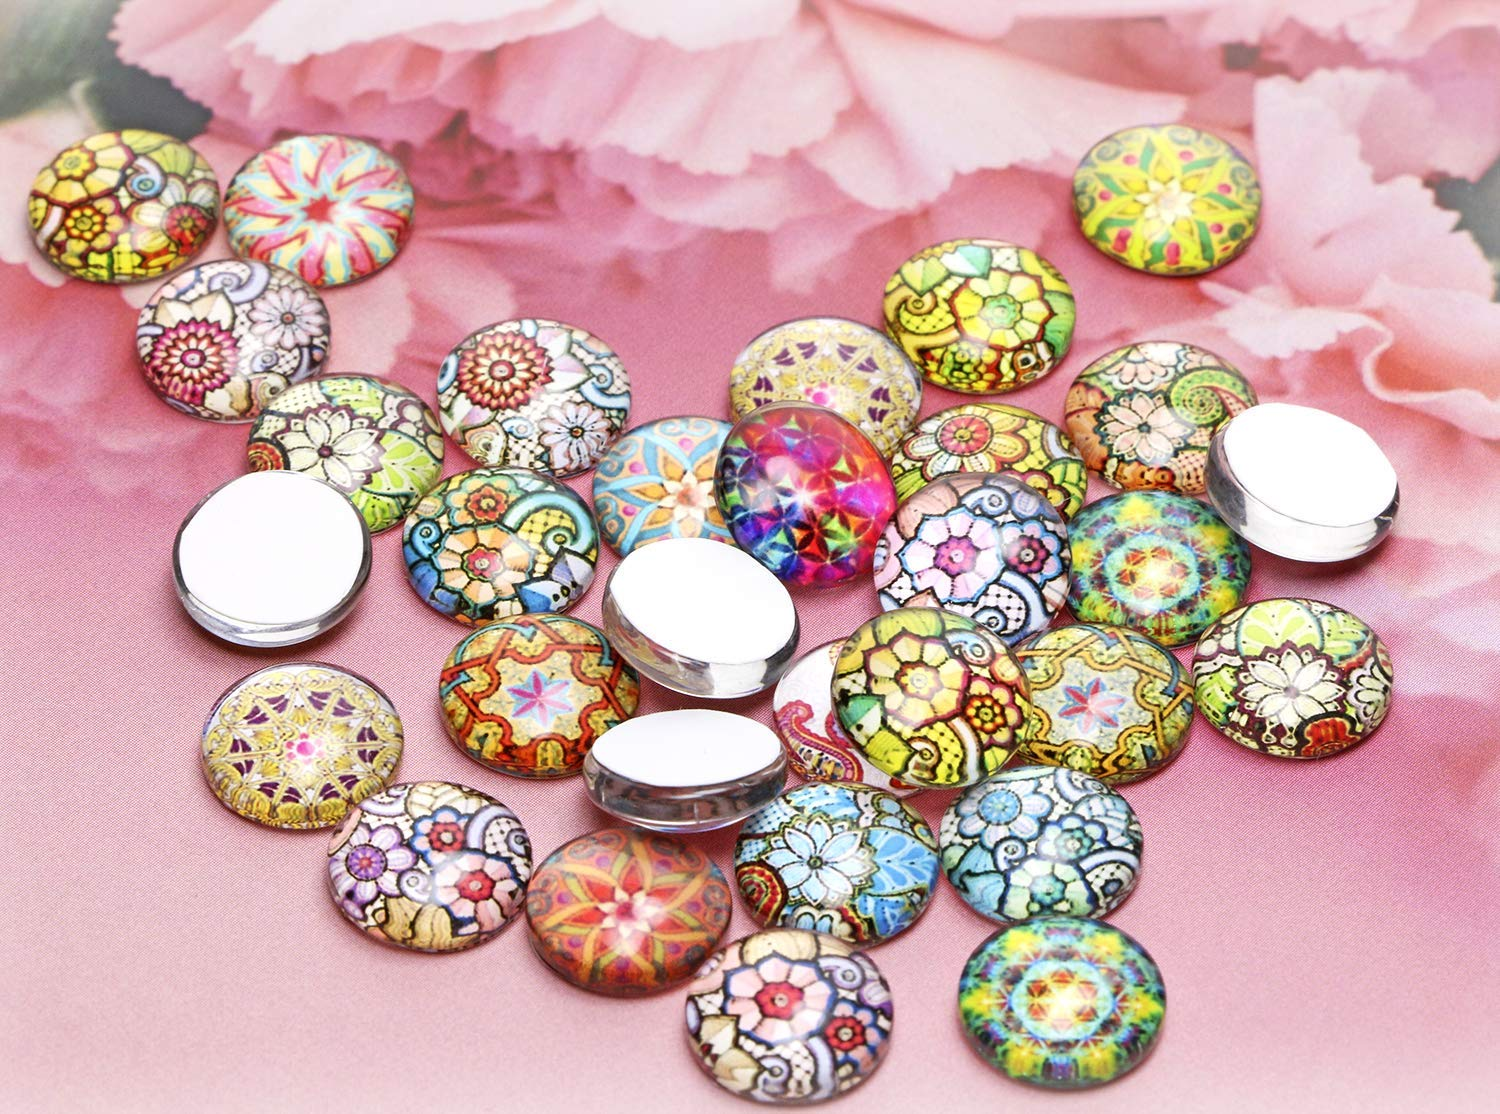 Necklace Bezel Pendant Setting Trays Penta Angel 12mm 100Pcs Mosaic Printed Half Round Glass Dome Cabochons Tiles Colored Pattern Charms for DIY Craft Photo Charms Jewelry Making Earrings